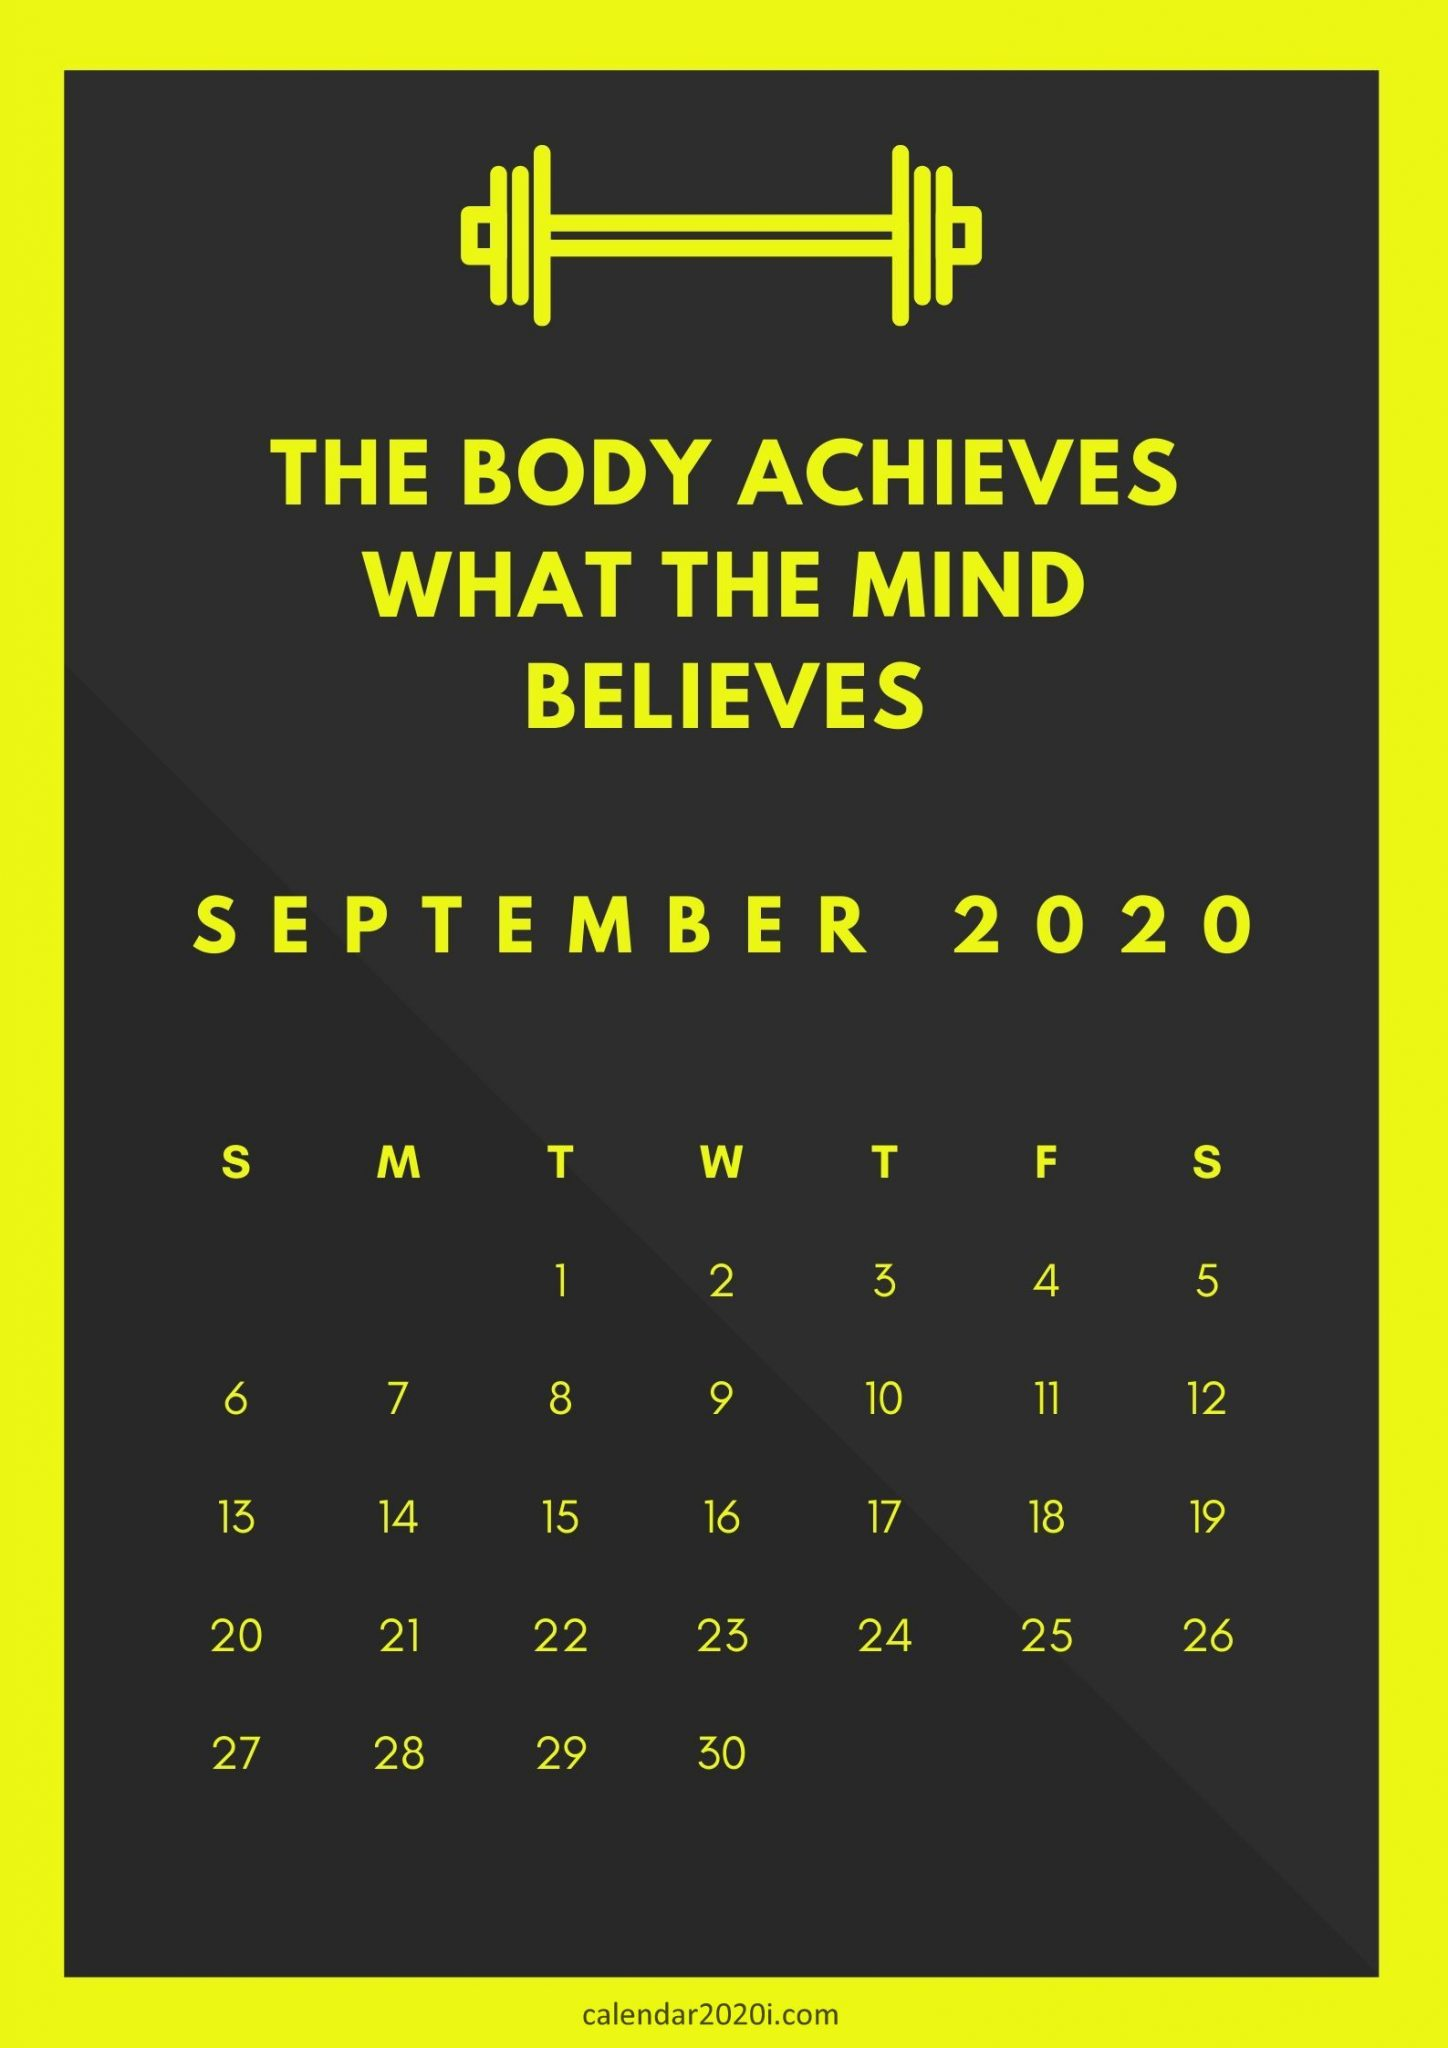 September 2020 Calendar with Quote